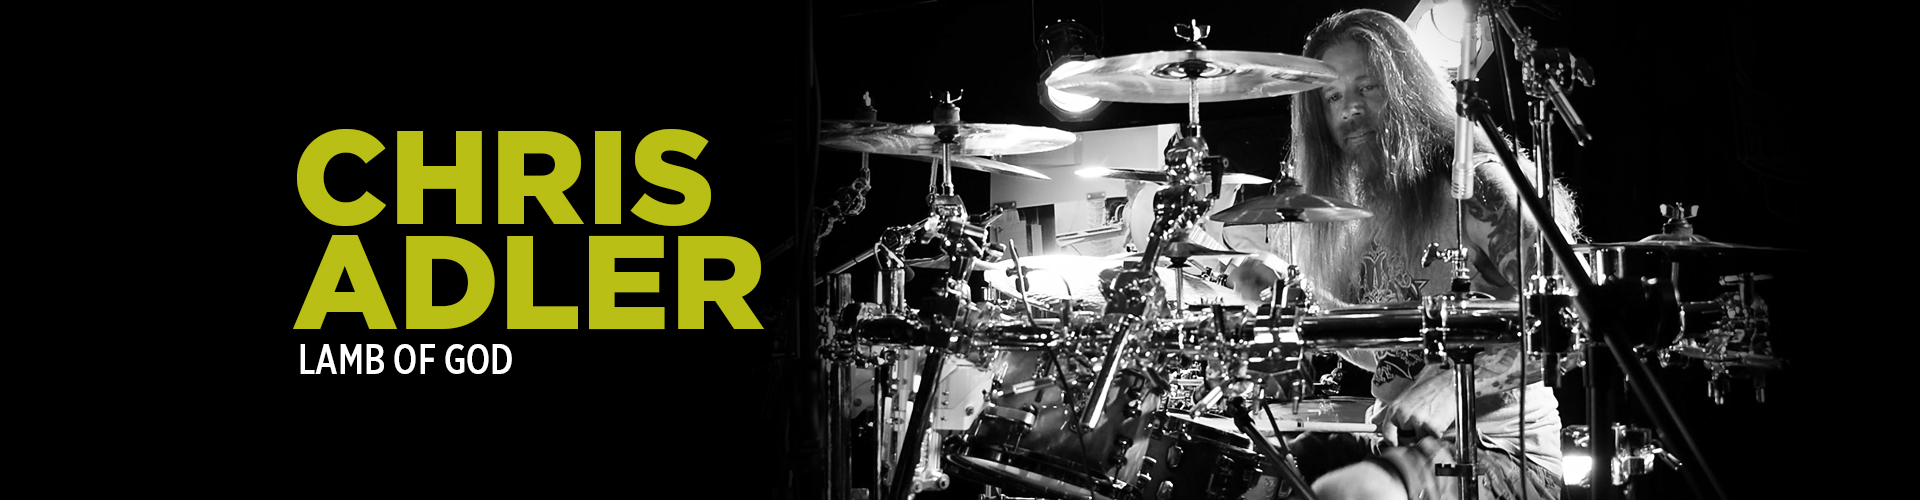 2018_Chris_Adler